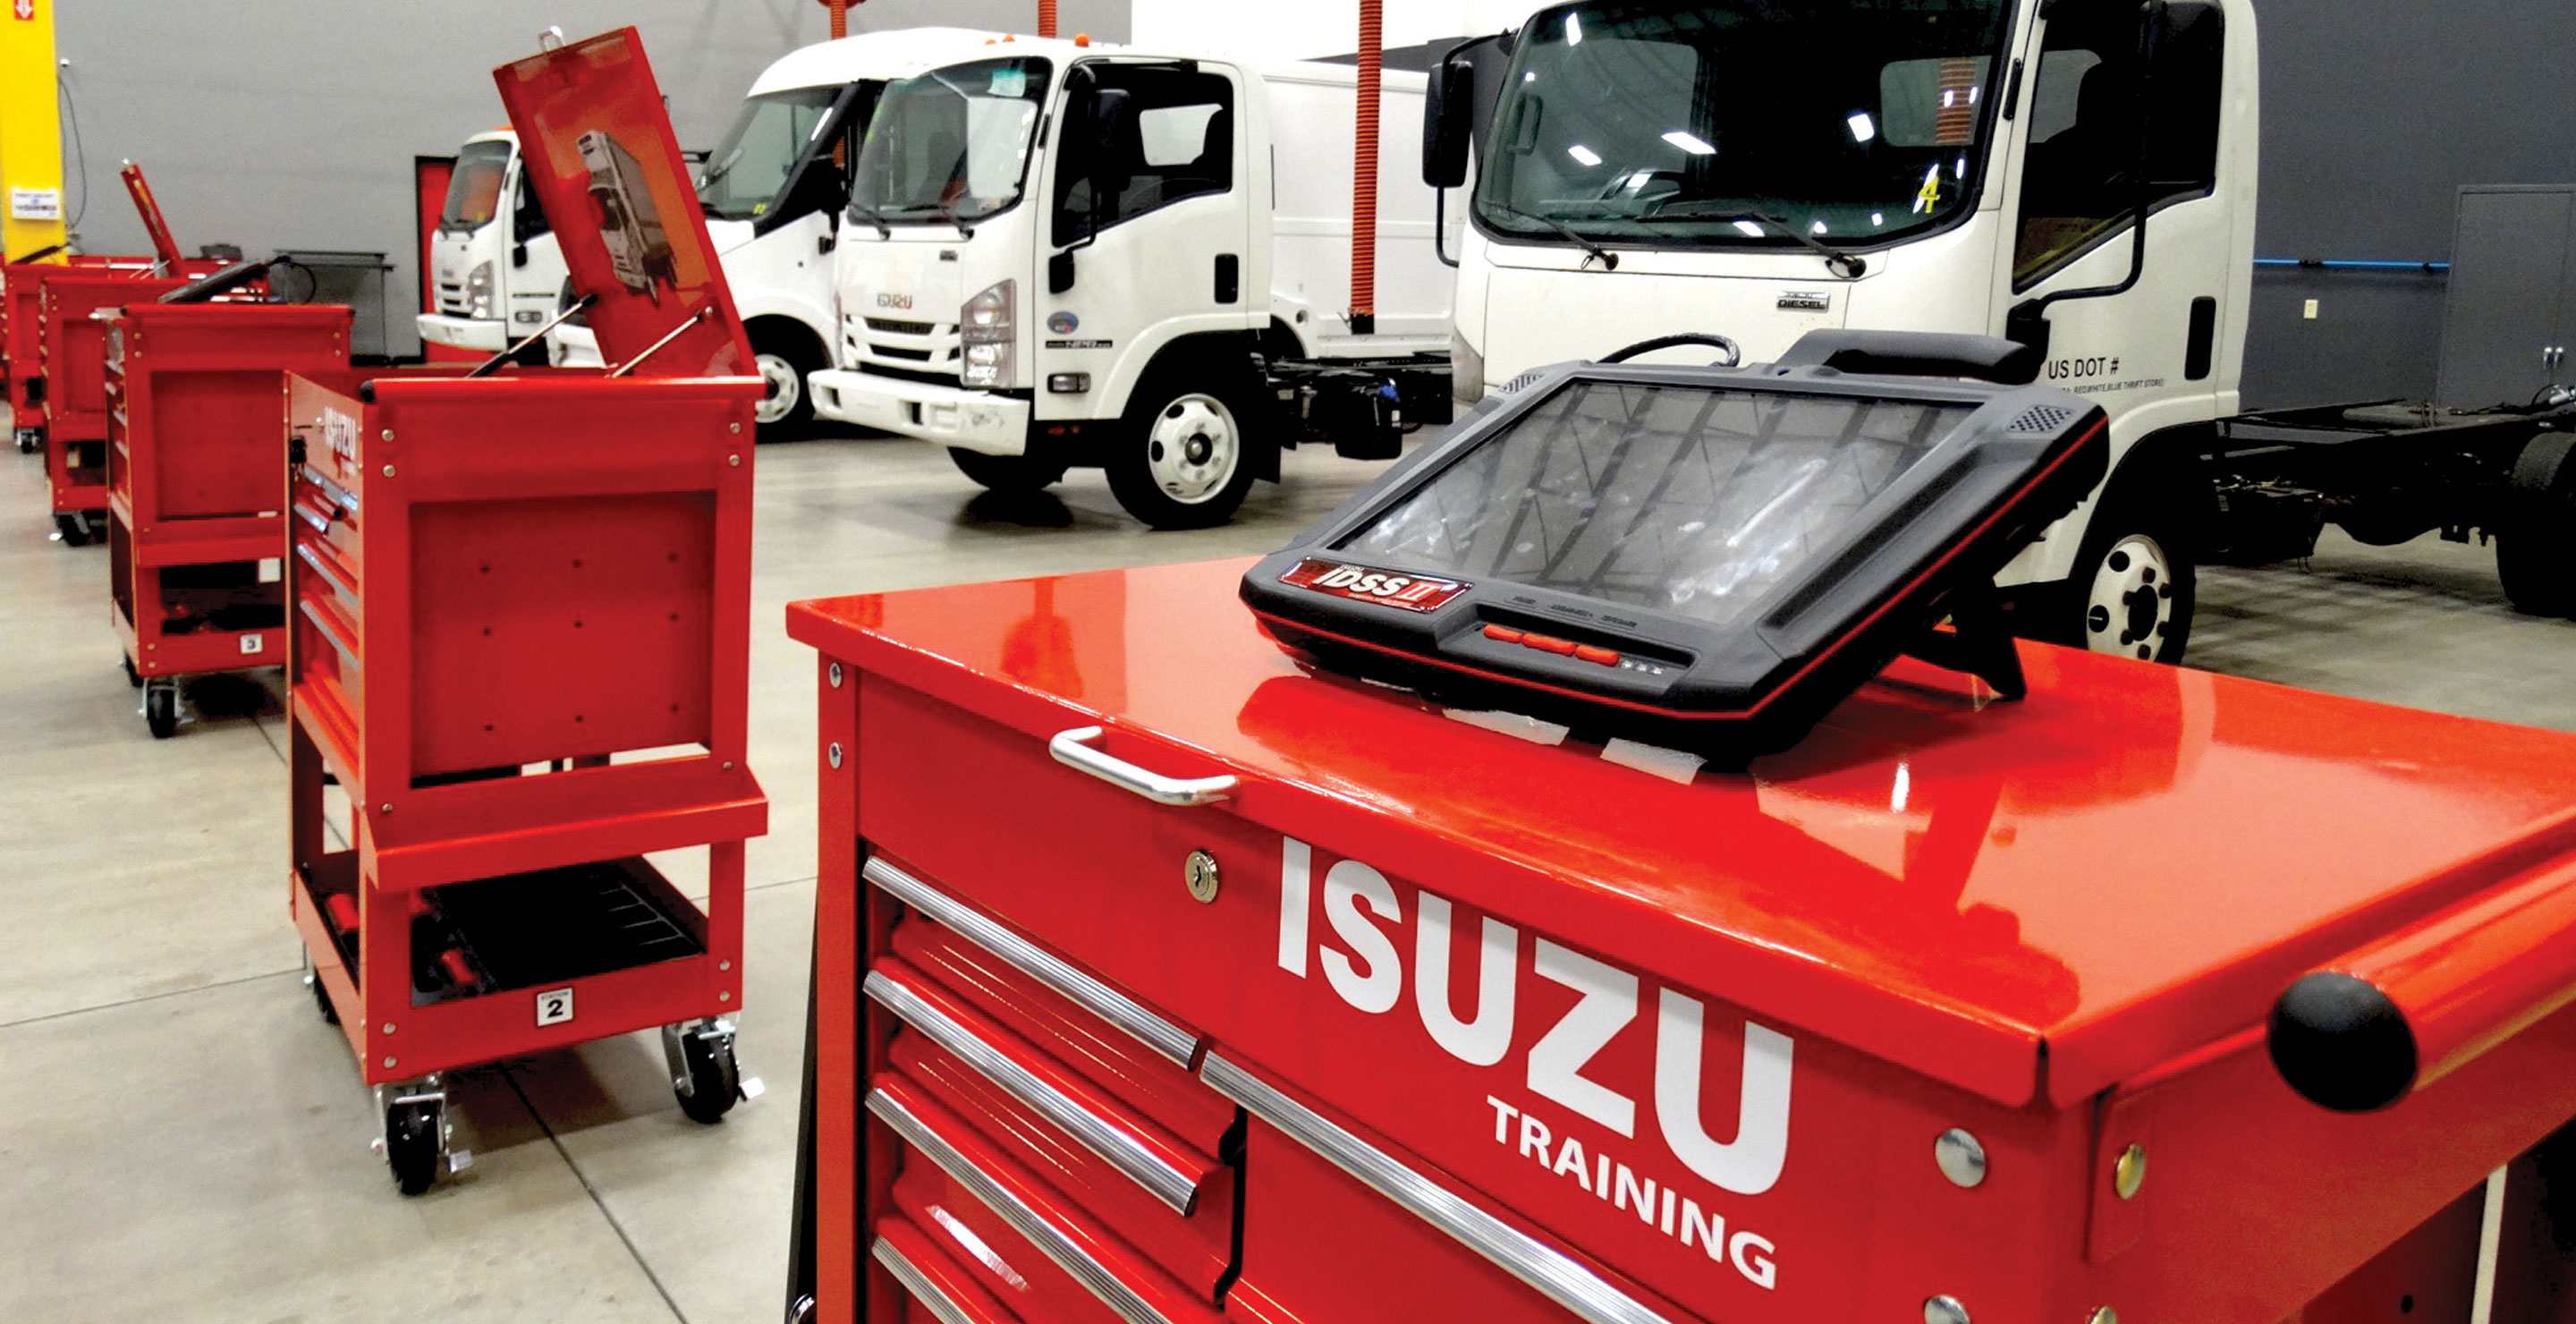 Isuzu North American Technical Competition Held in Mericle Flex